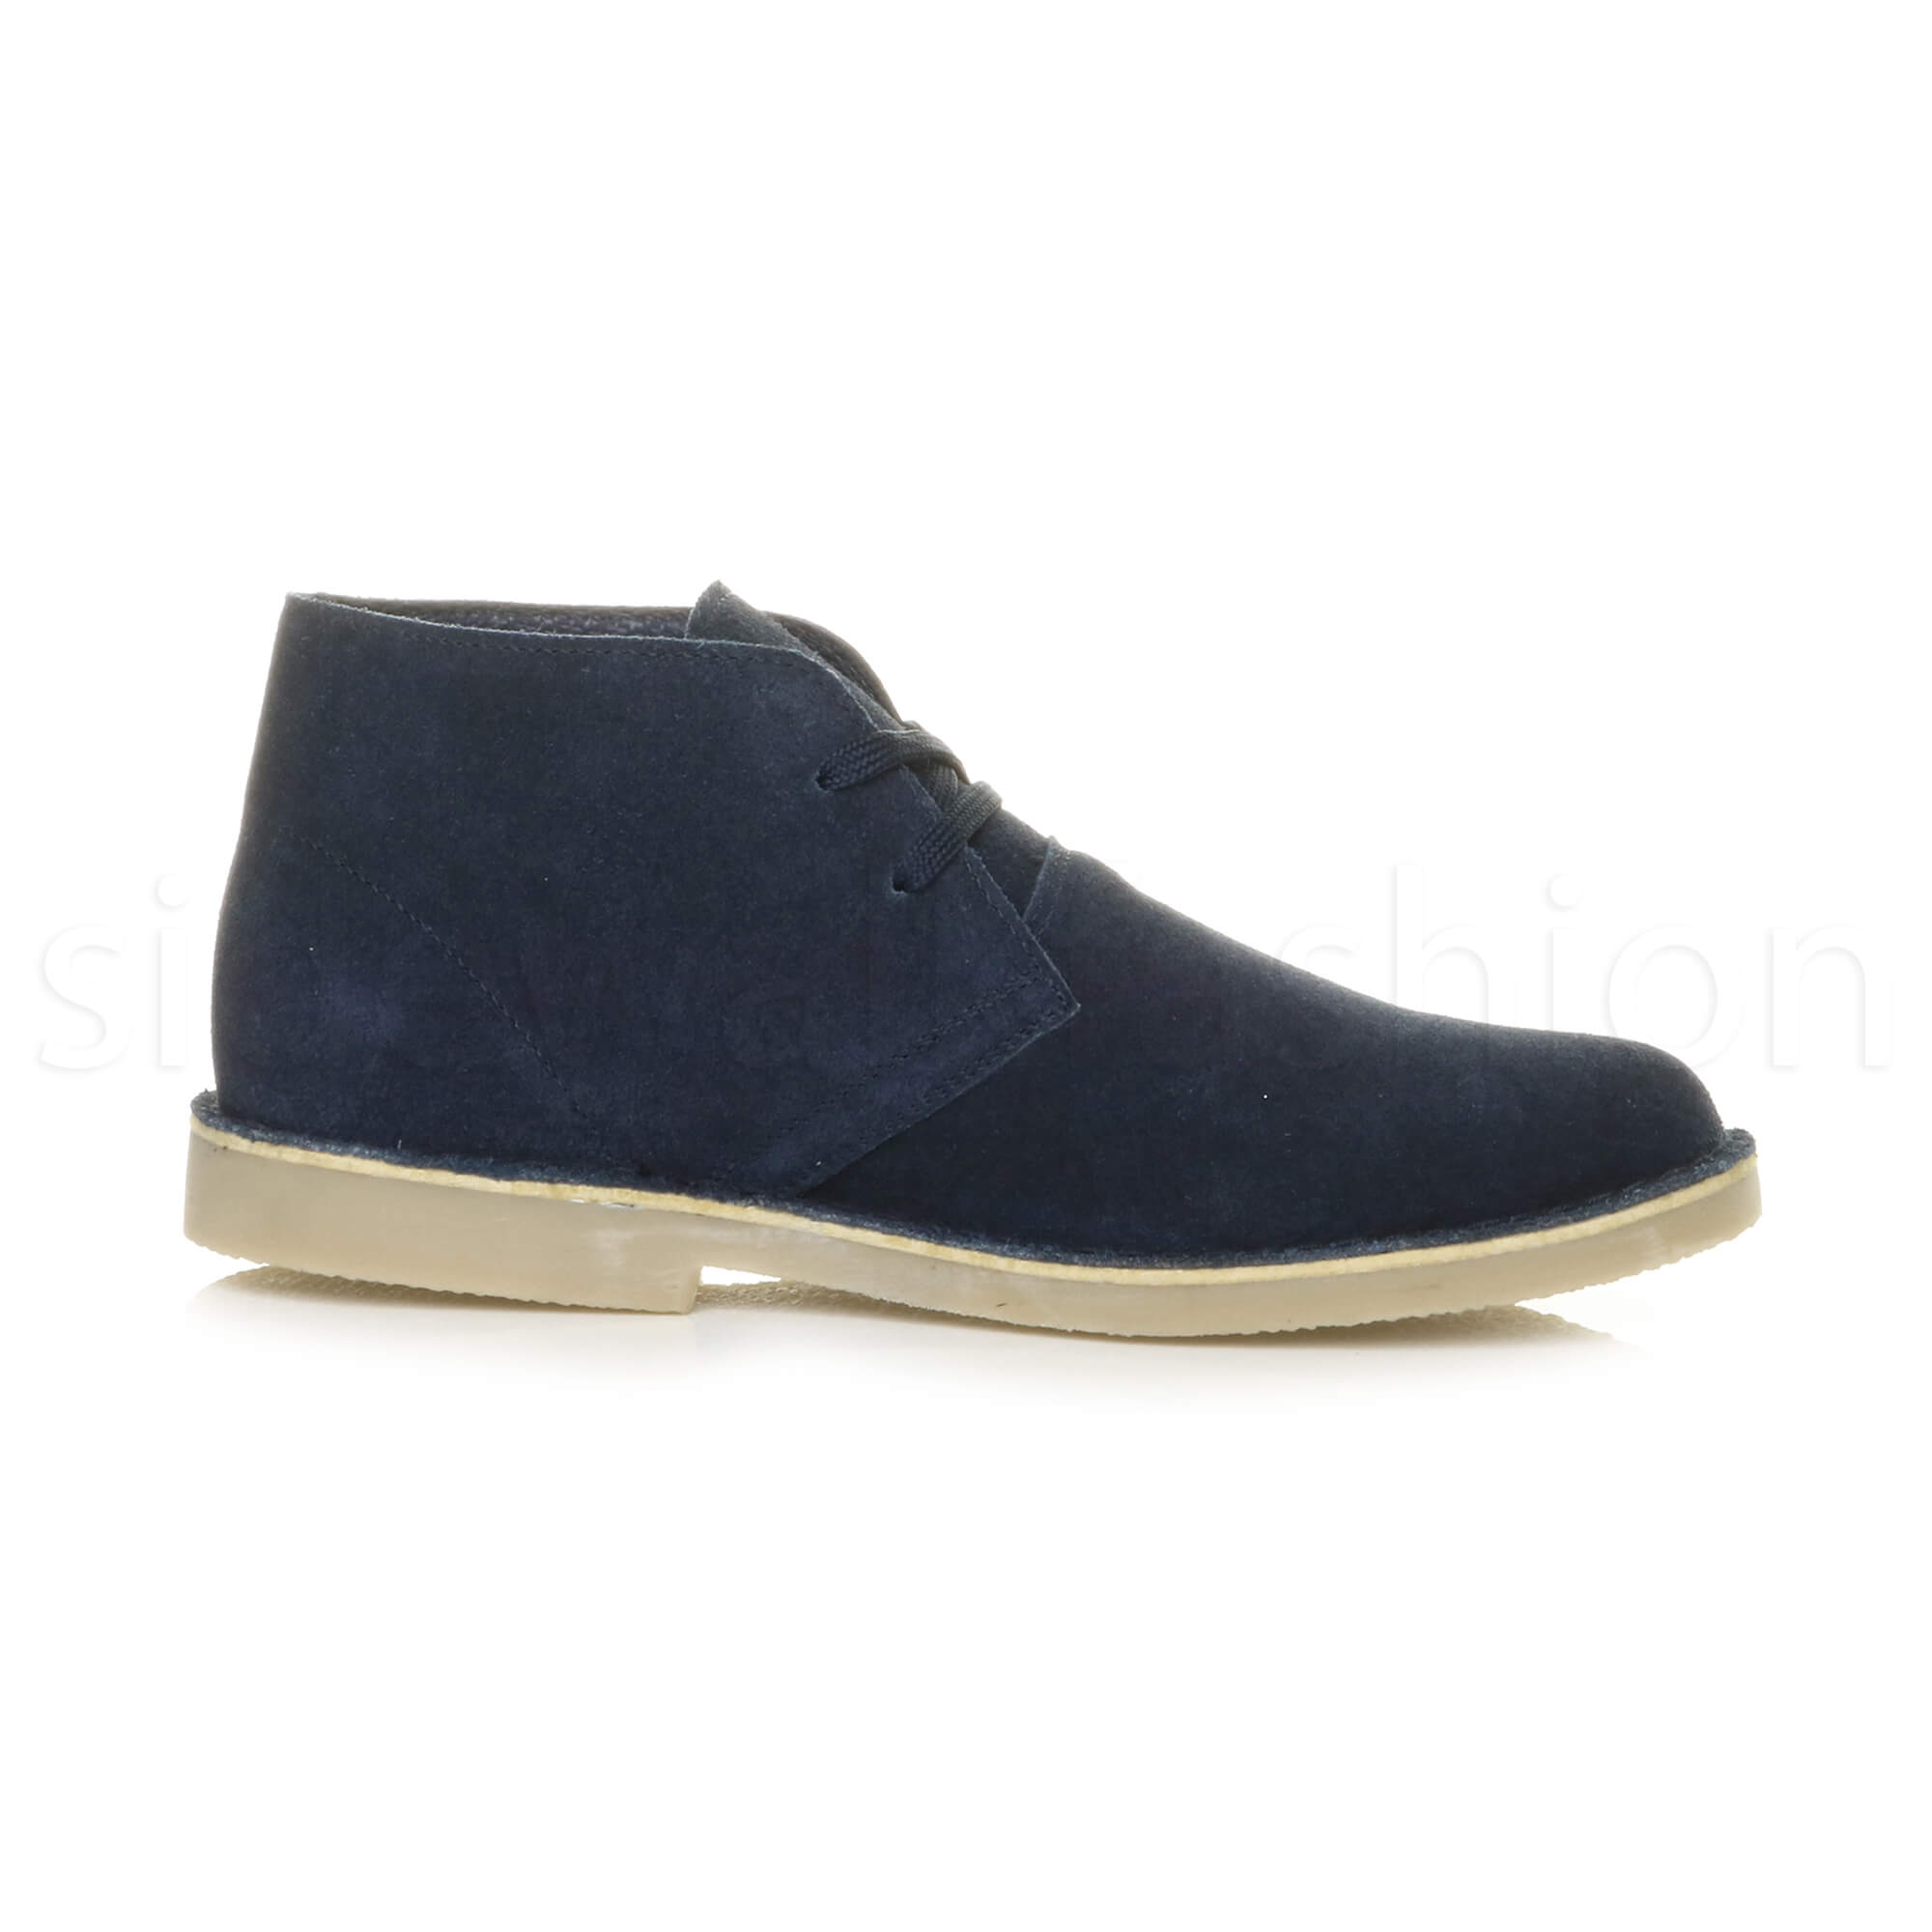 Mens-lace-up-rubber-sole-suede-ankle-chukka-desert-boots-classic-shoes-size thumbnail 18